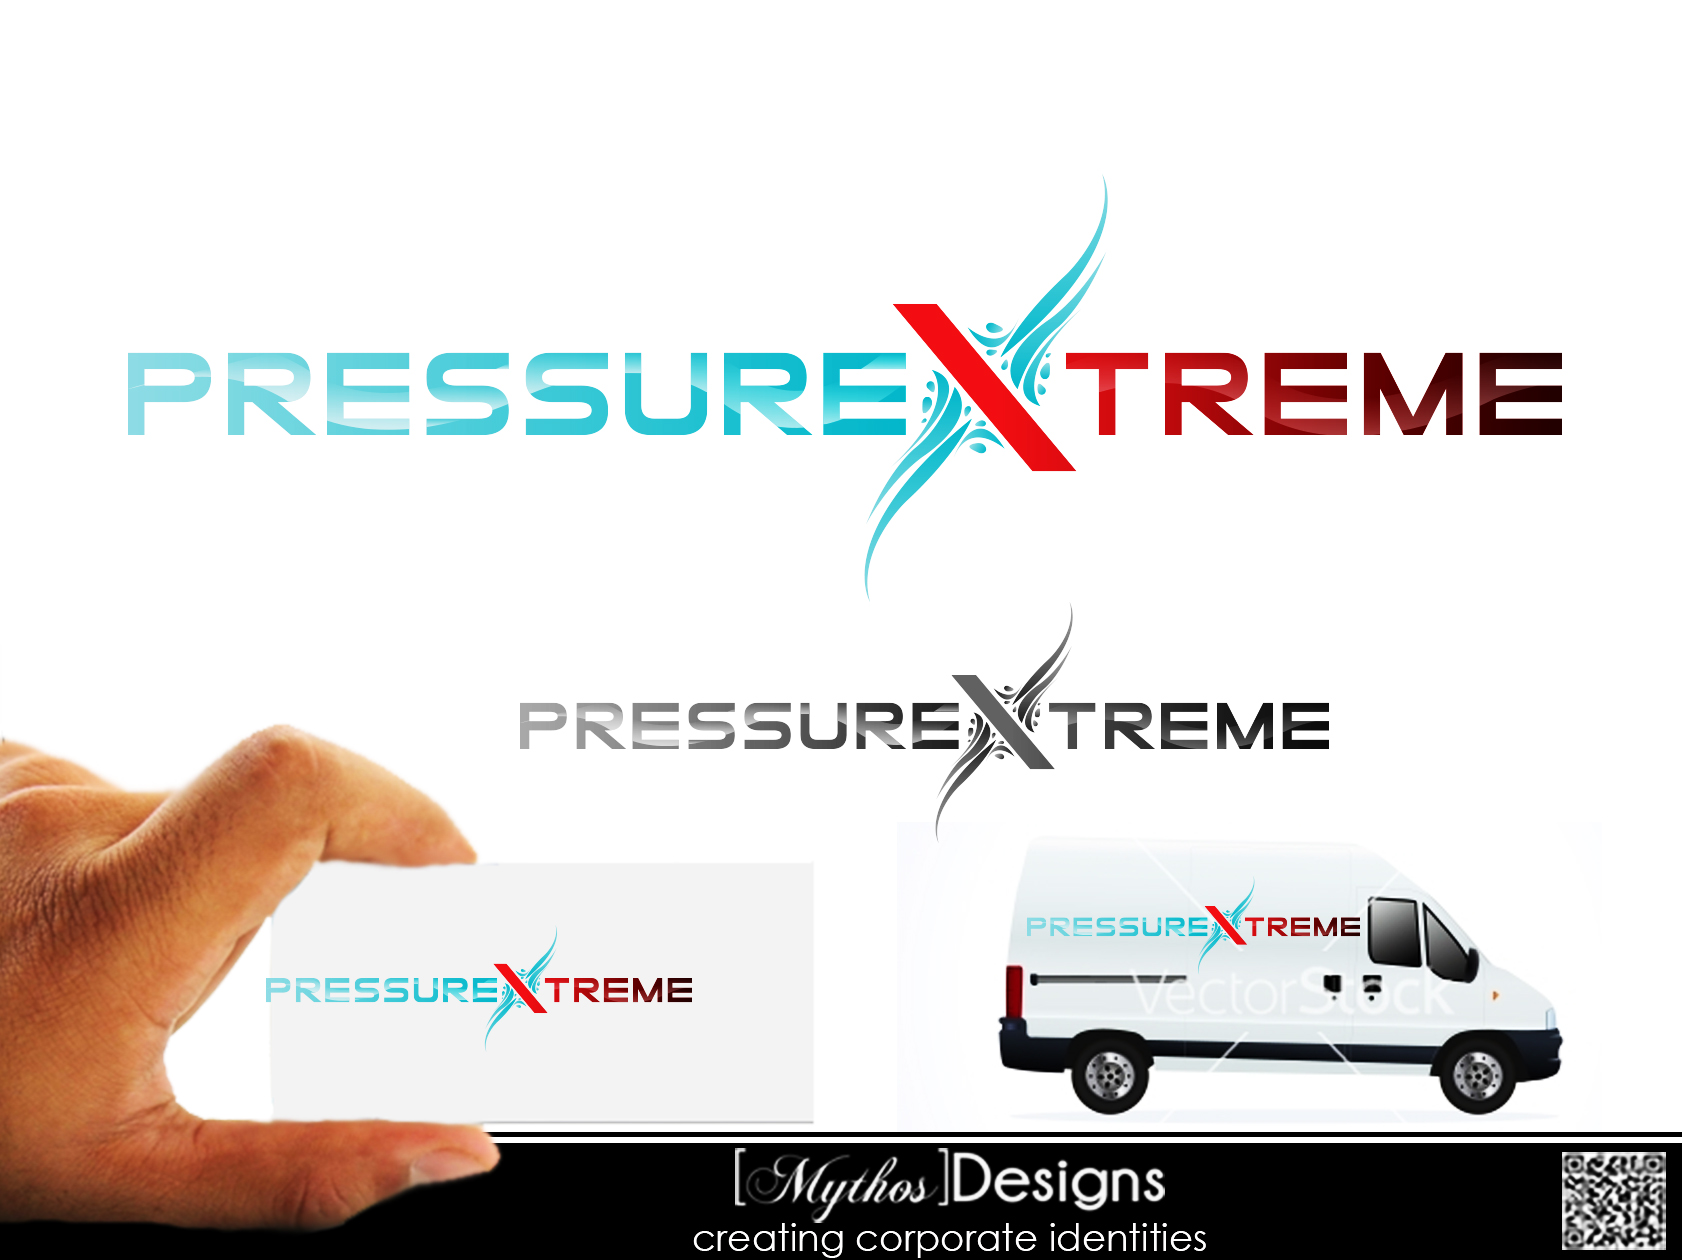 Logo Design by Mythos Designs - Entry No. 52 in the Logo Design Contest New Logo Design for PRESSUREXTREME.